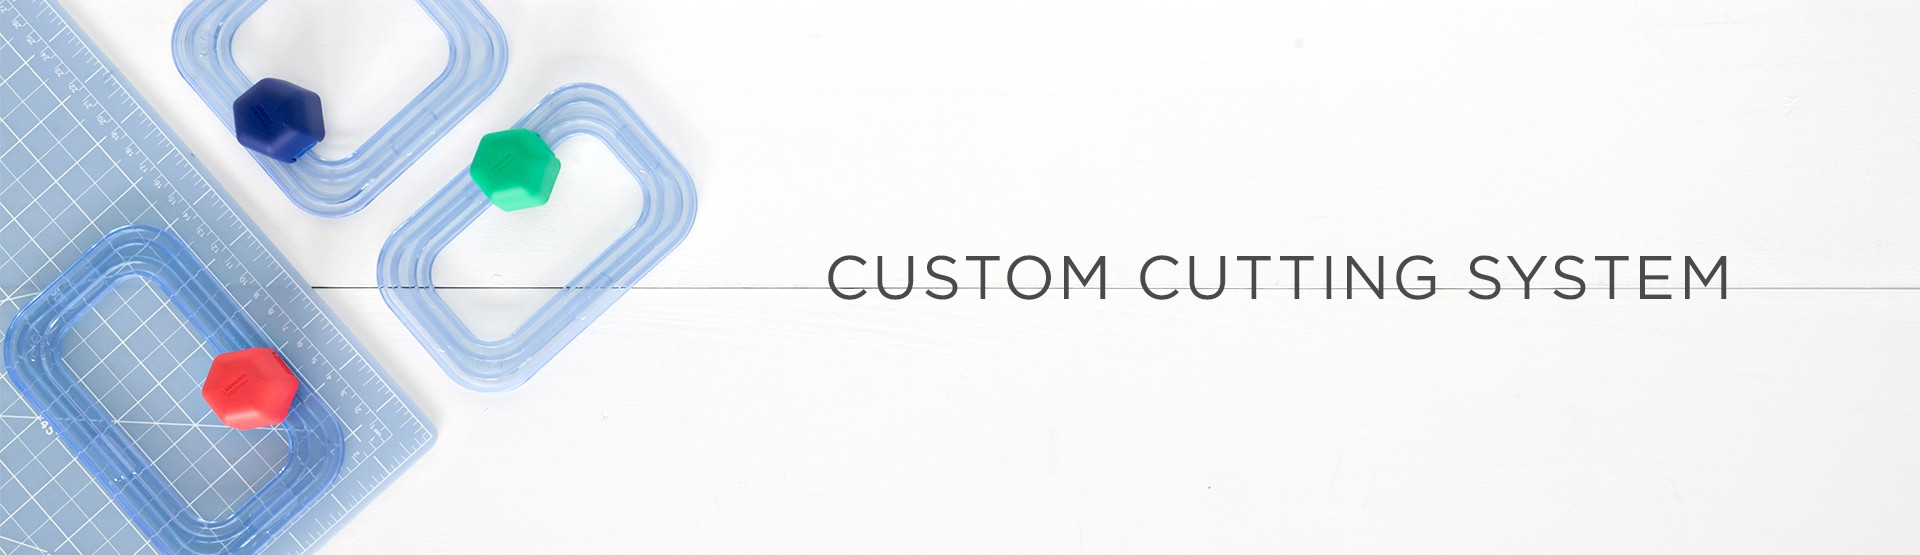 Custom Cutting System